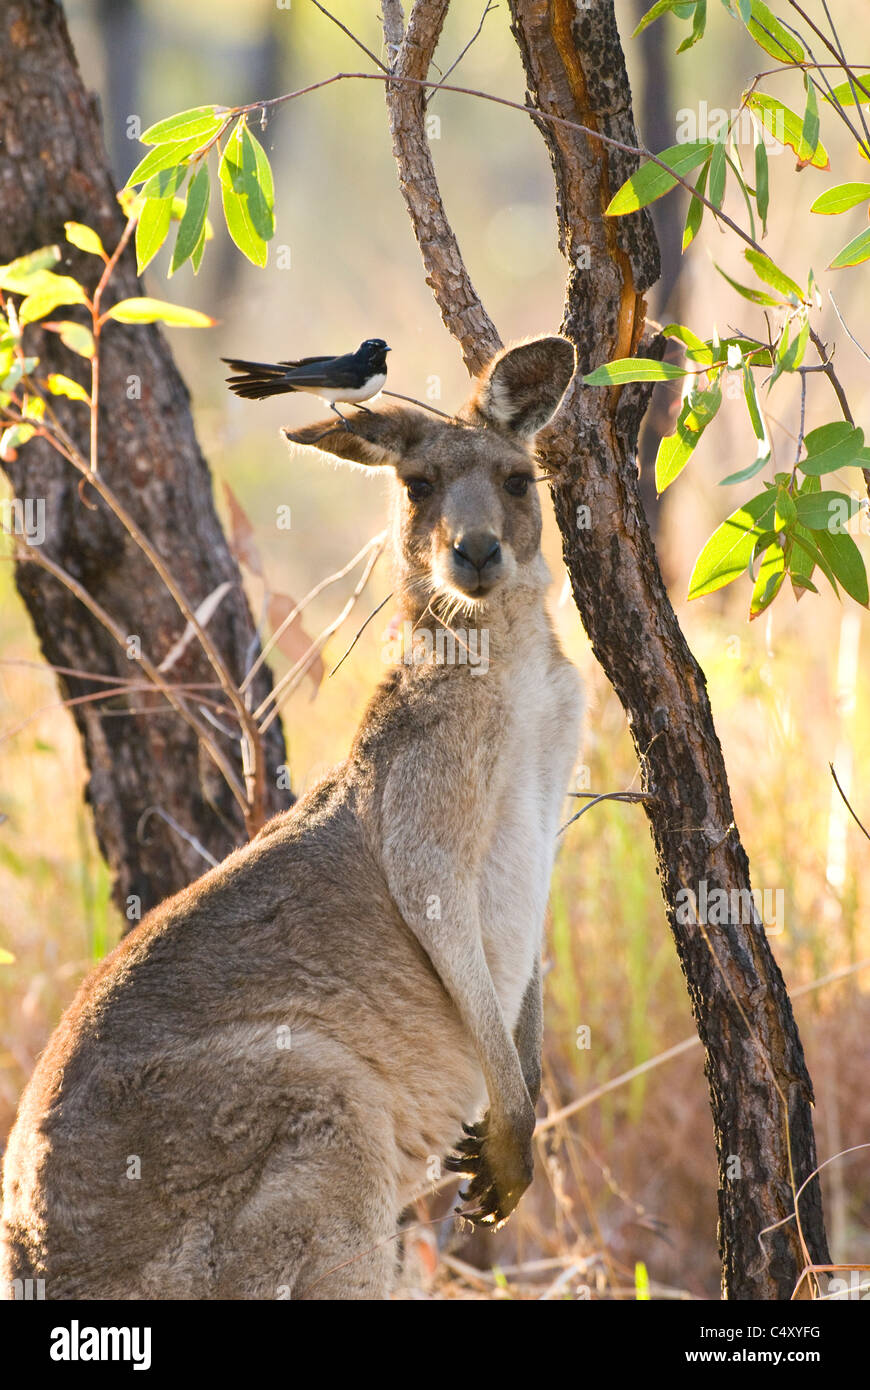 Willy wagtail perched on ear of eastern gray kangaroo (Macropus giganteus) in Undara National Park in Queensland - Stock Image